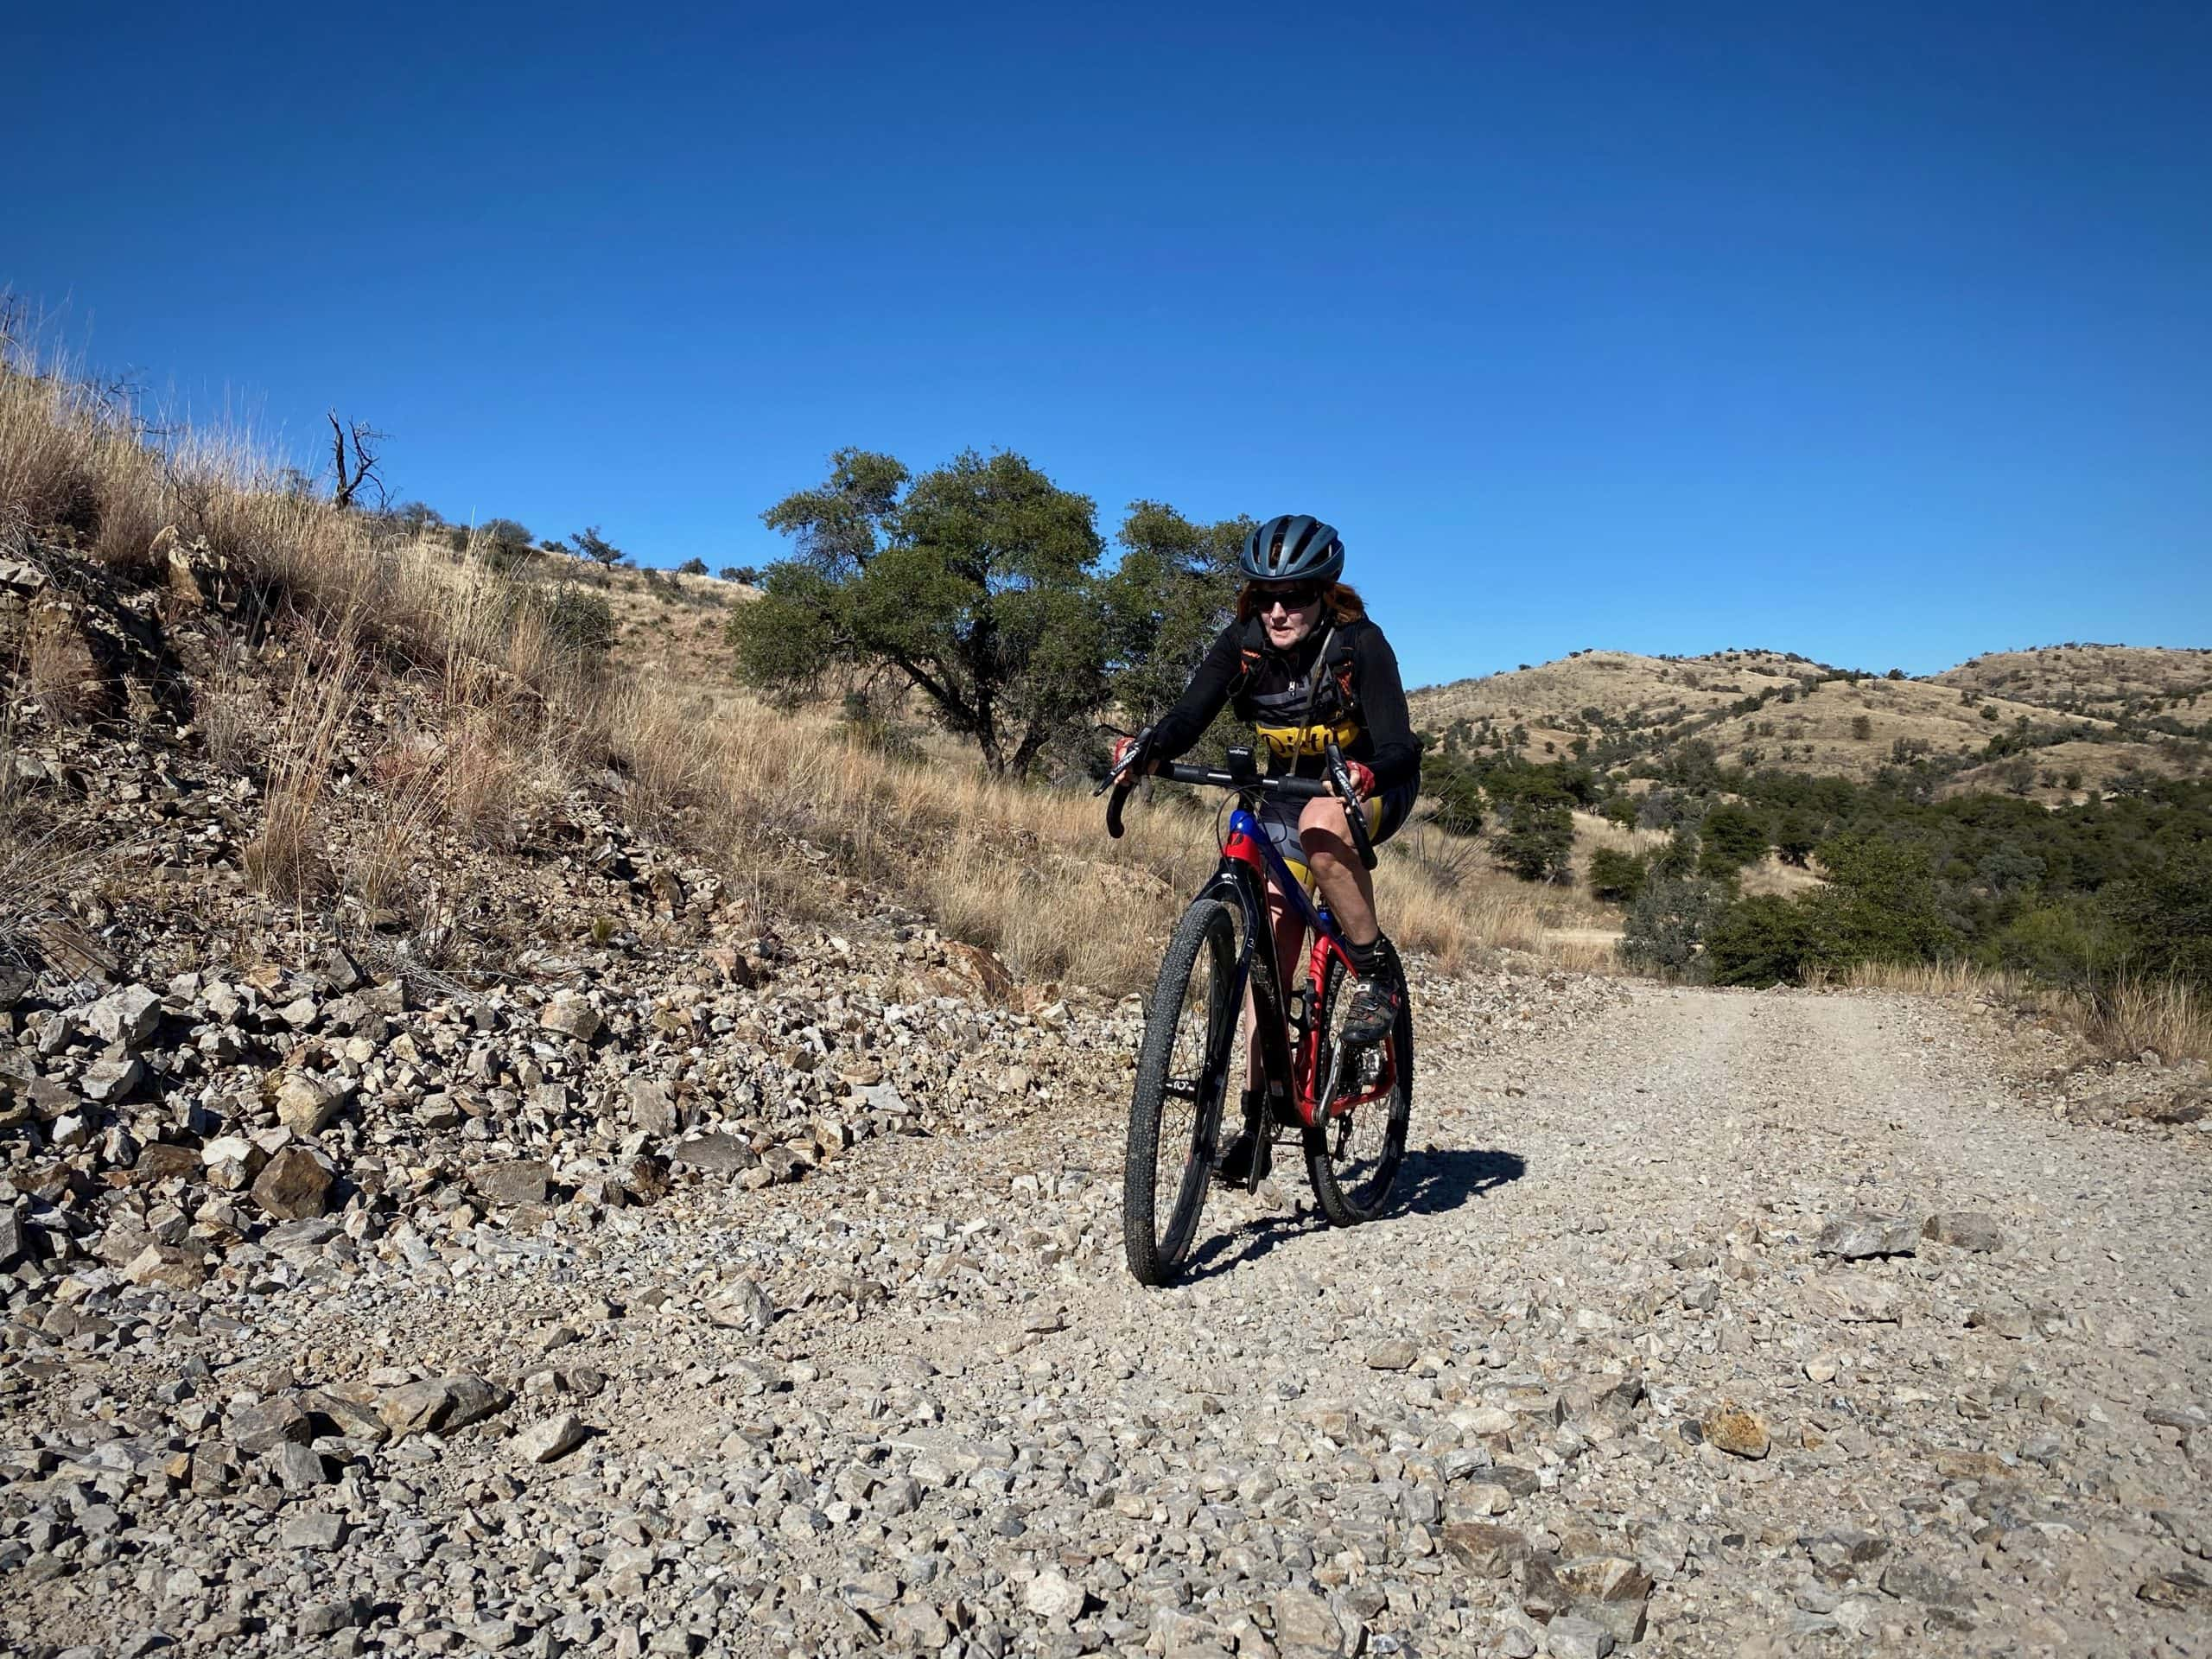 Gravel cyclist climbing hill on FS 217 in Warsaw Canyon.